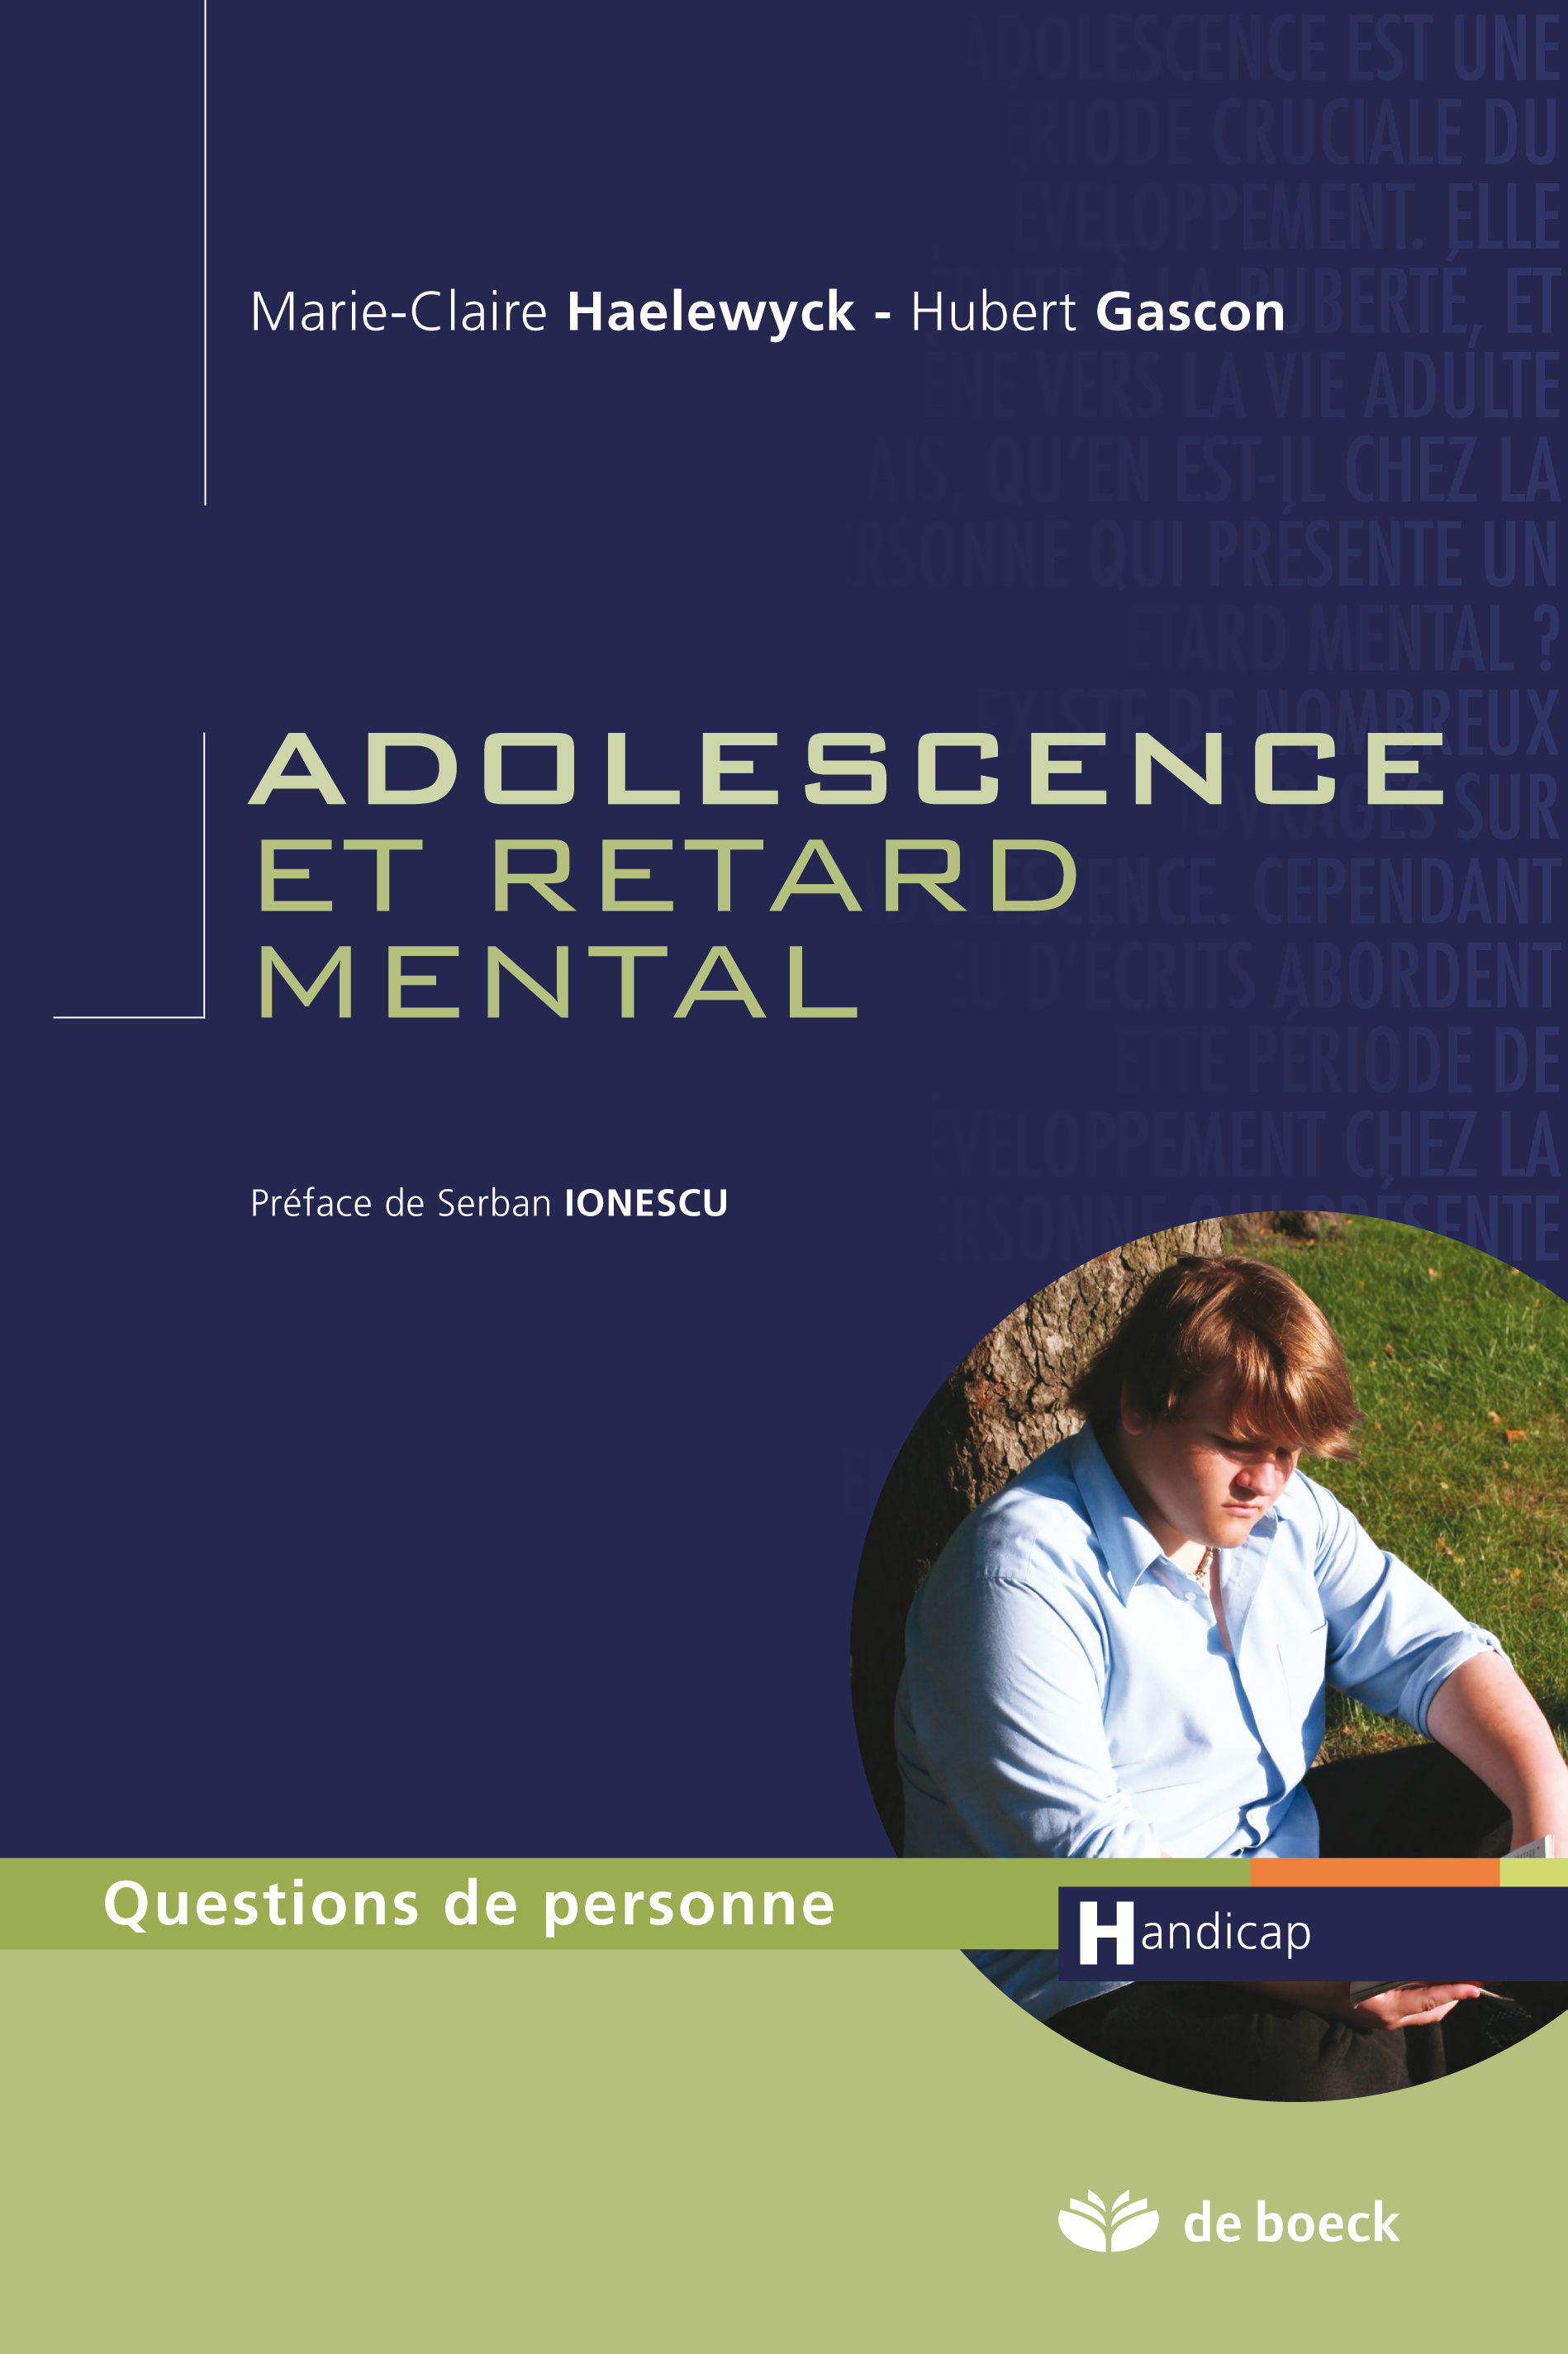 Chinease les adolescents can also find@todorazor.com